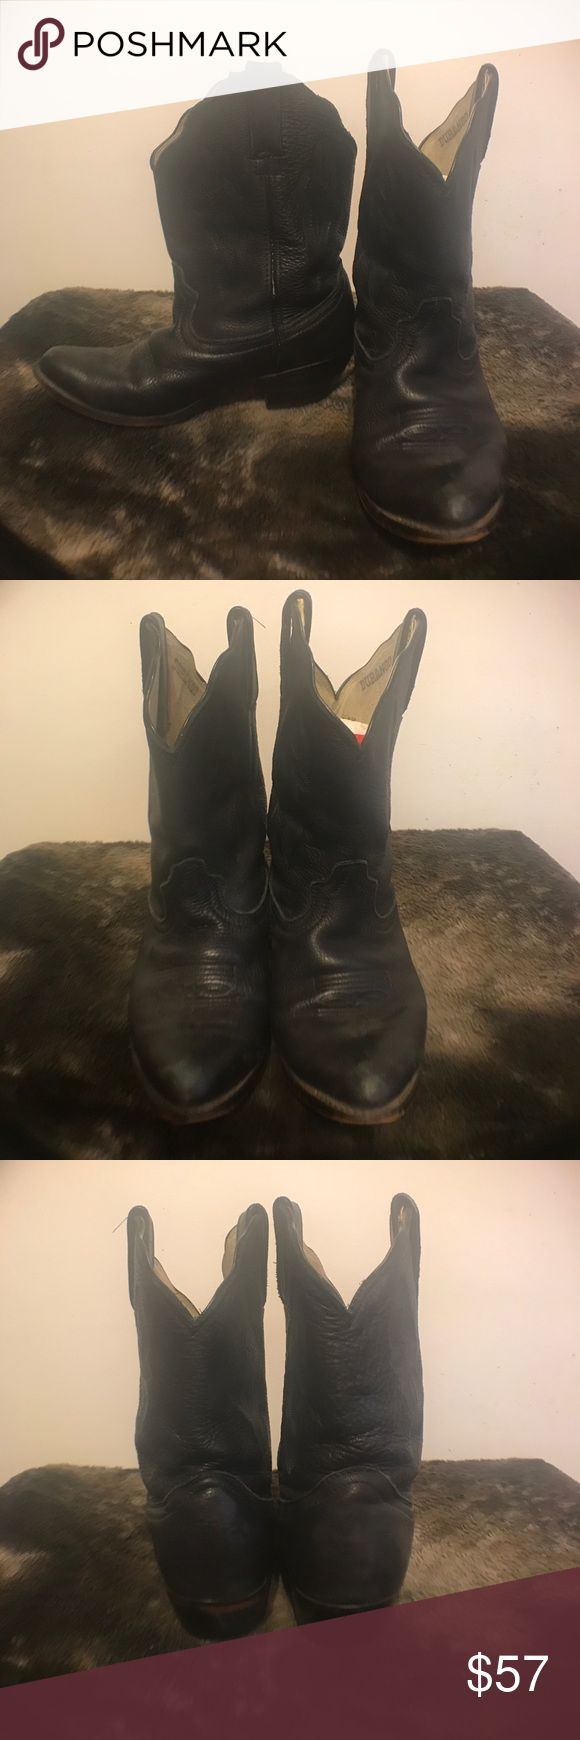 Vintage Durango leather cowboy boots! 6 1/2! Used vintage genuine leather Durango cowboy boots. Size 6 1/2W! Gentle used with some wear but no damage. Serial number include RD 630 / 15195W / 505. Please enlarge photos for detail and ware. Durango Shoes Ankle Boots & Booties